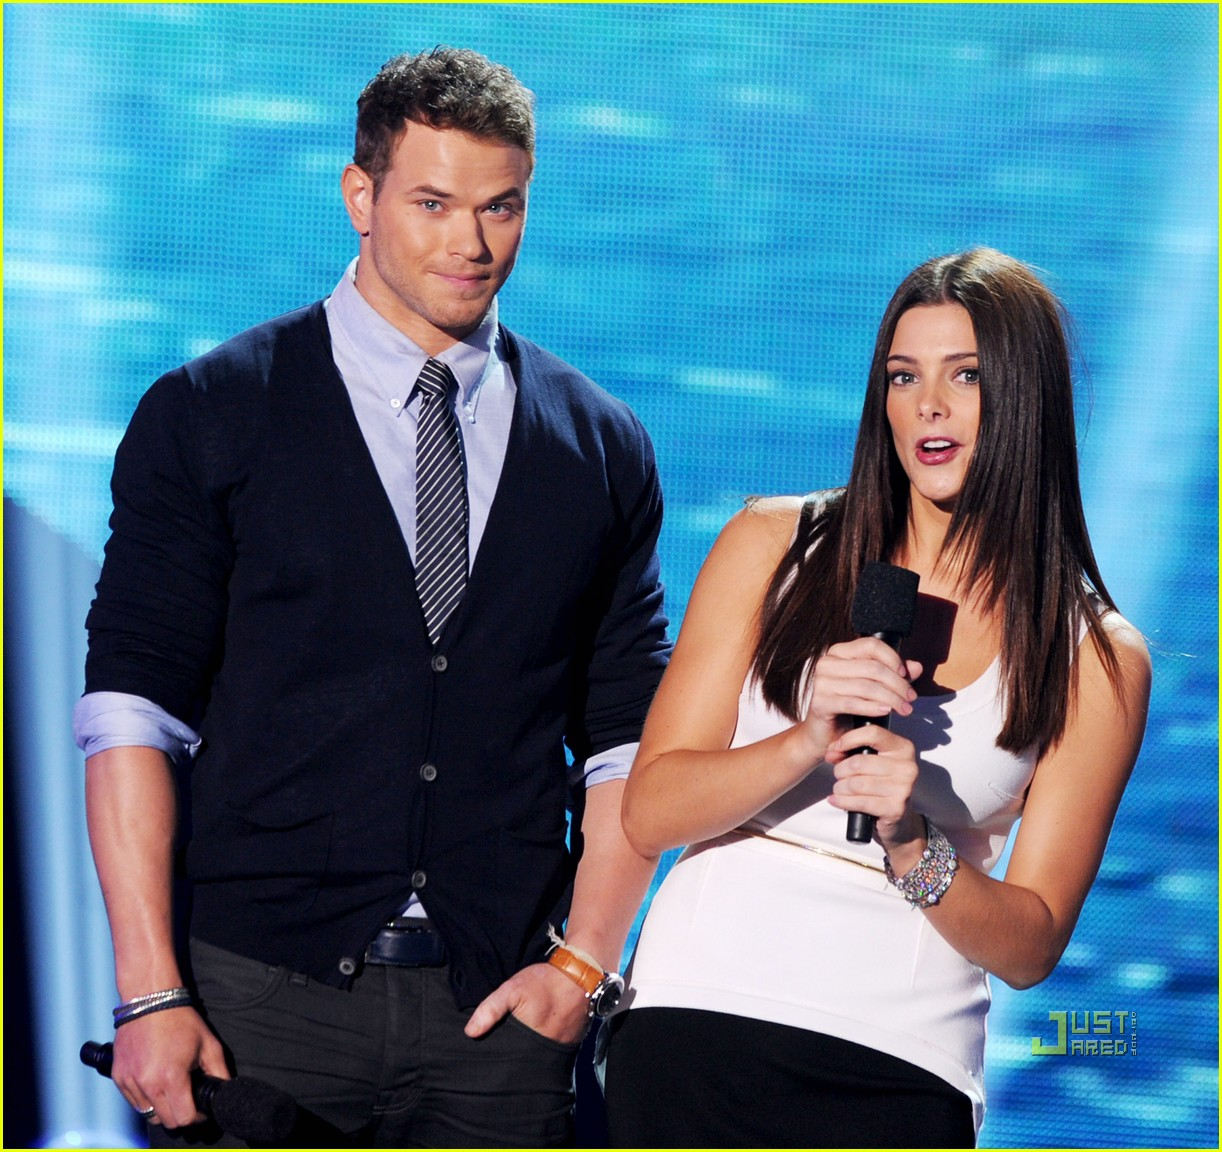 http://4.bp.blogspot.com/-hbdbOtwq6pM/TkiZ2QLQVUI/AAAAAAAAHgA/bAhsW0ODmxQ/s1600/ashley-greene-teen-choice-awards-kellan-lutz-03.jpg